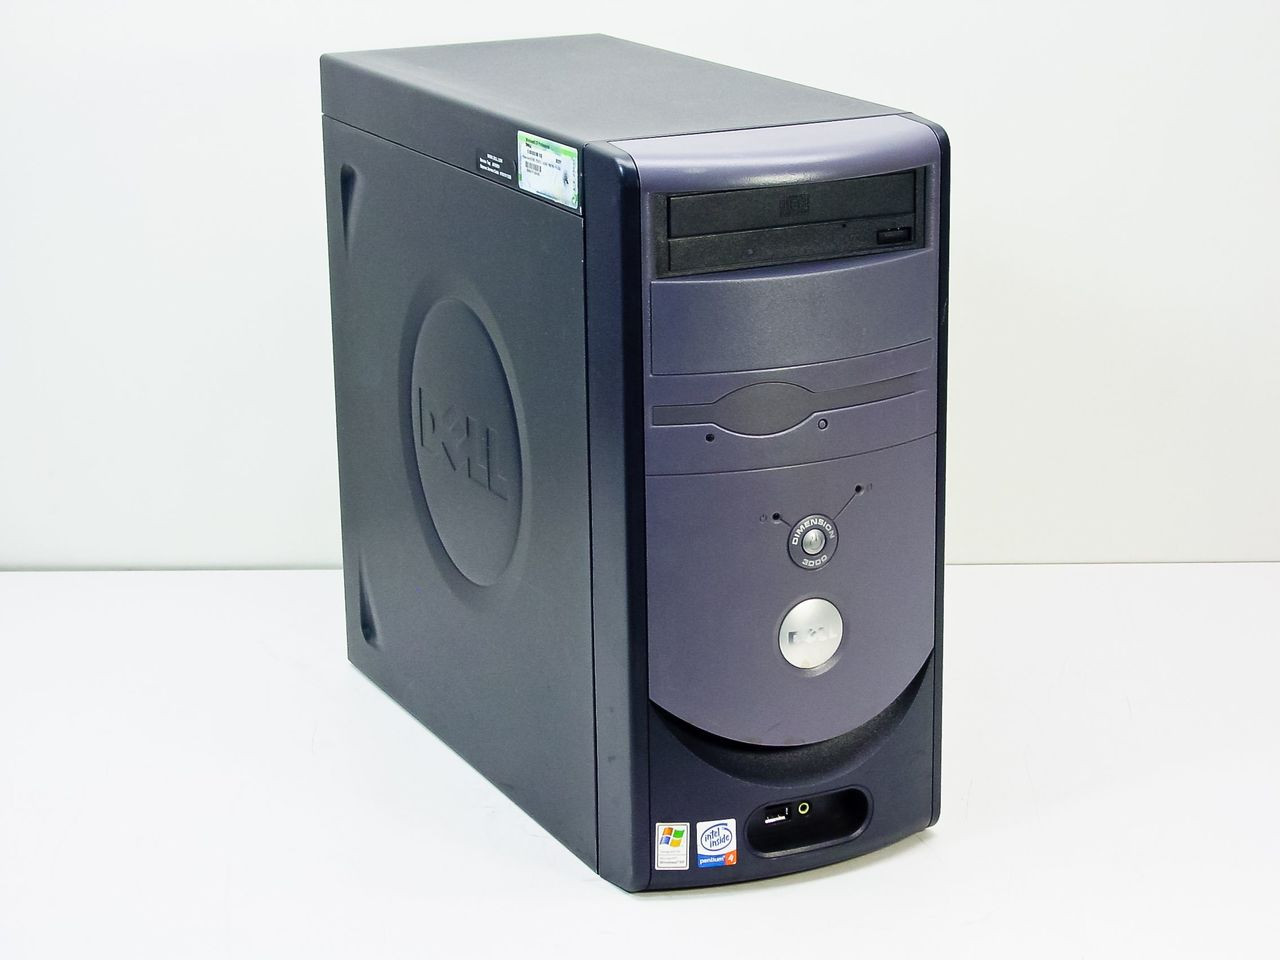 dell dimension 3000 pentium 4 2 8 ghz 256 mb 30 gb tower computer rh recycledgoods com dell inspiron 15 3000 user manual dell inspiron 15 3000 user guide